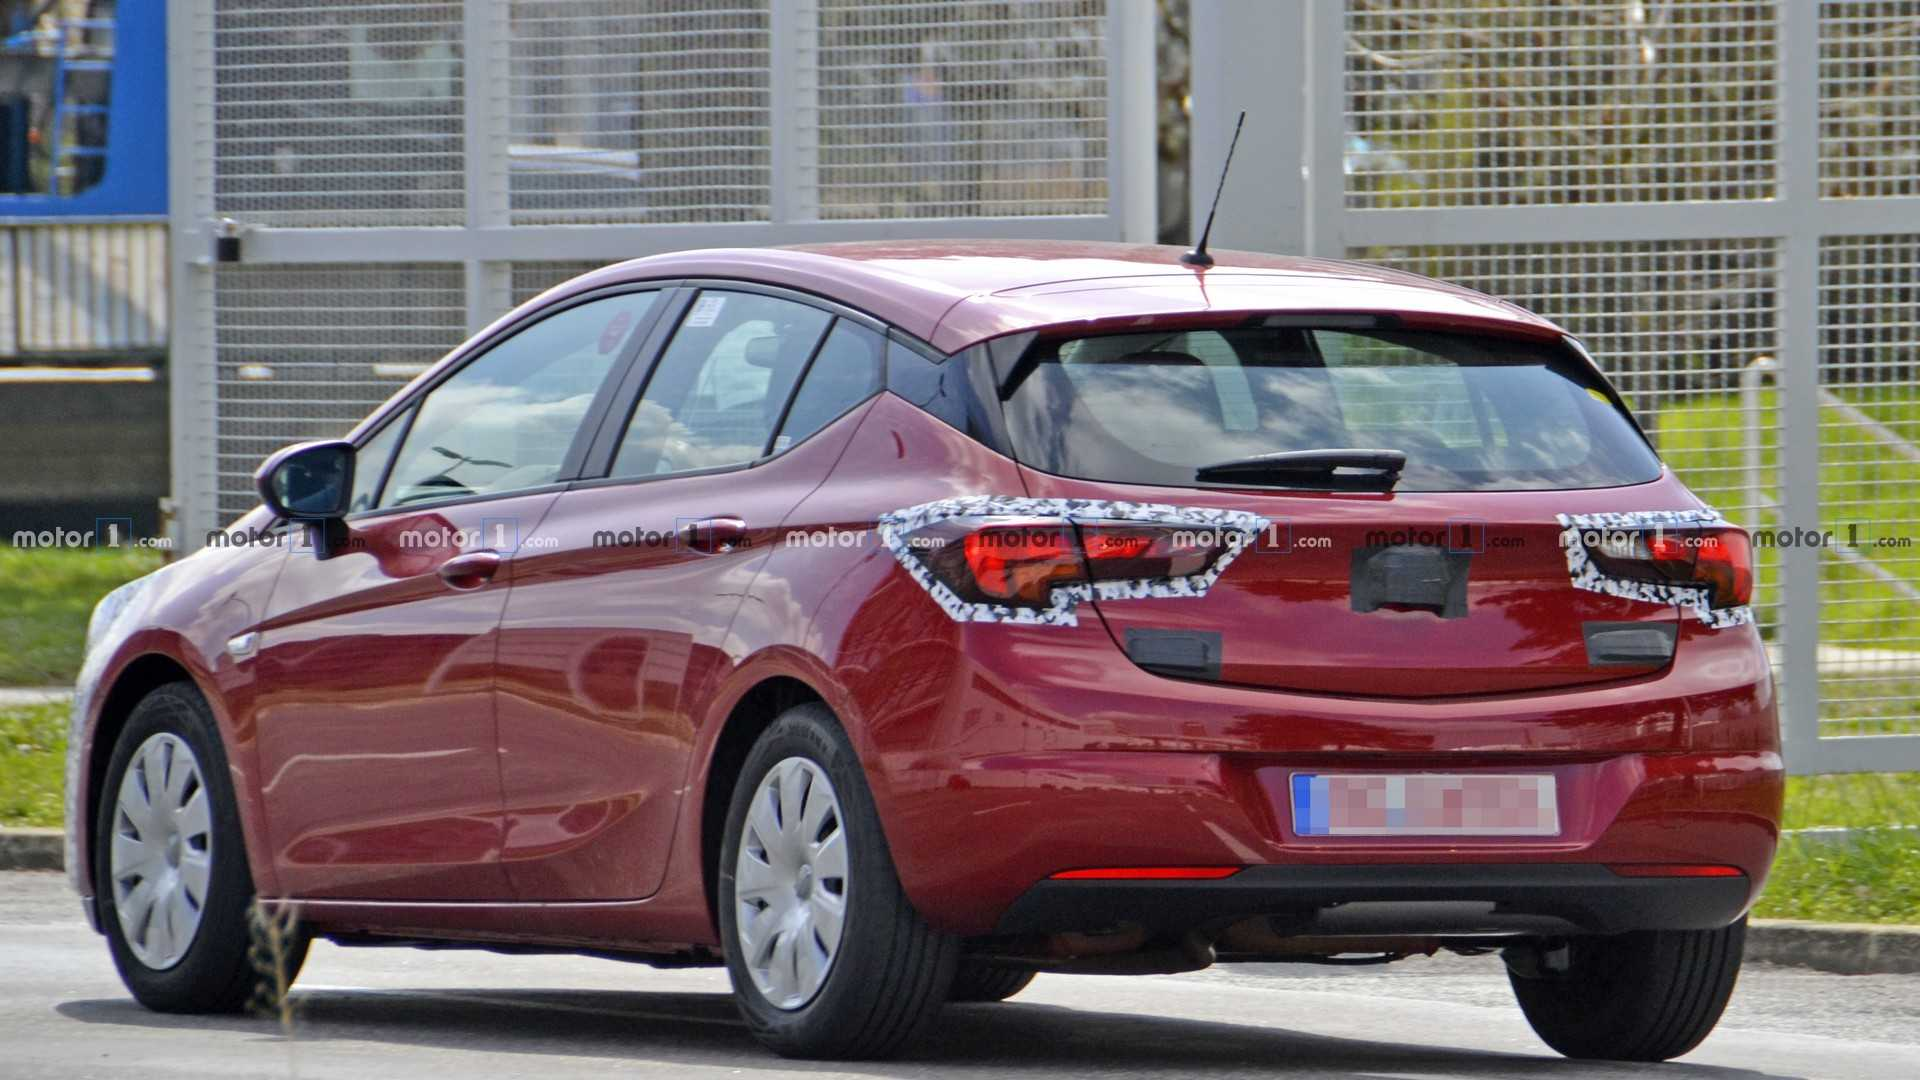 60 New 2020 Opel Astra Style